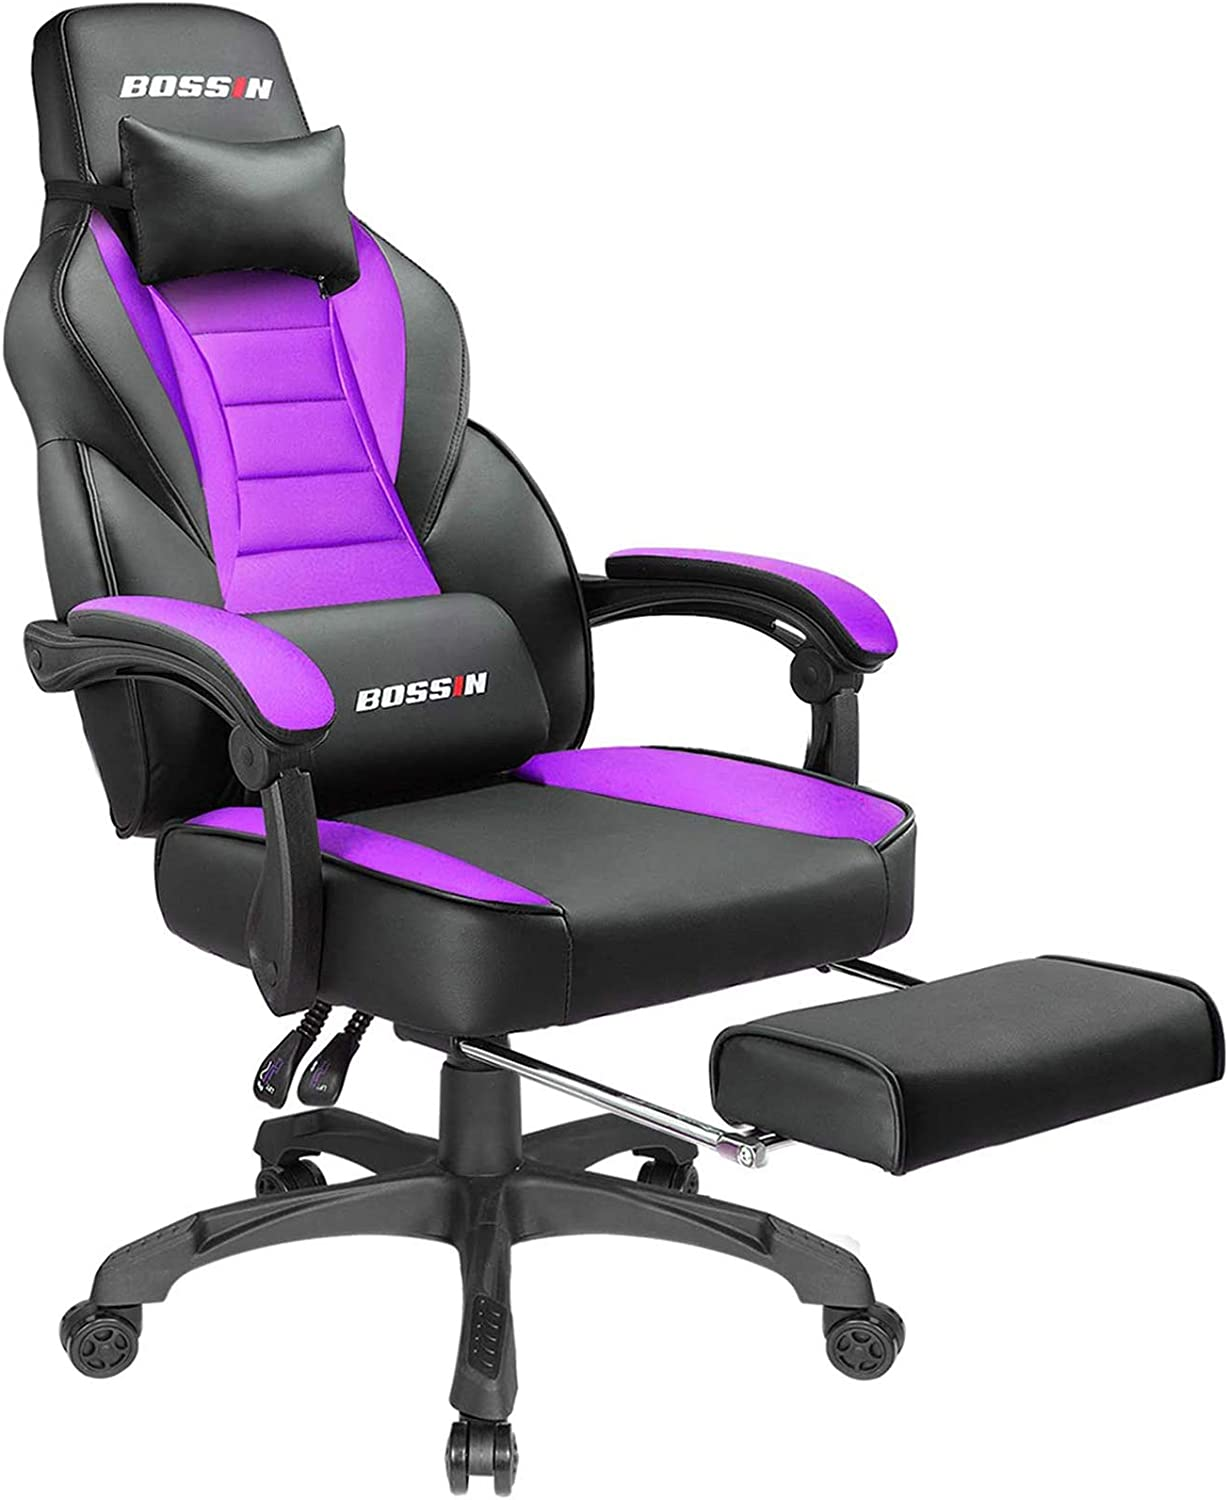 Gaming Chair Racing Style Office Ergonomic Chair High-Back PU Leather Design PC Computer Gaming Chair Adjustable Height Swivel Chair with Footrest, Headrest and Lumbar Support (Purple)